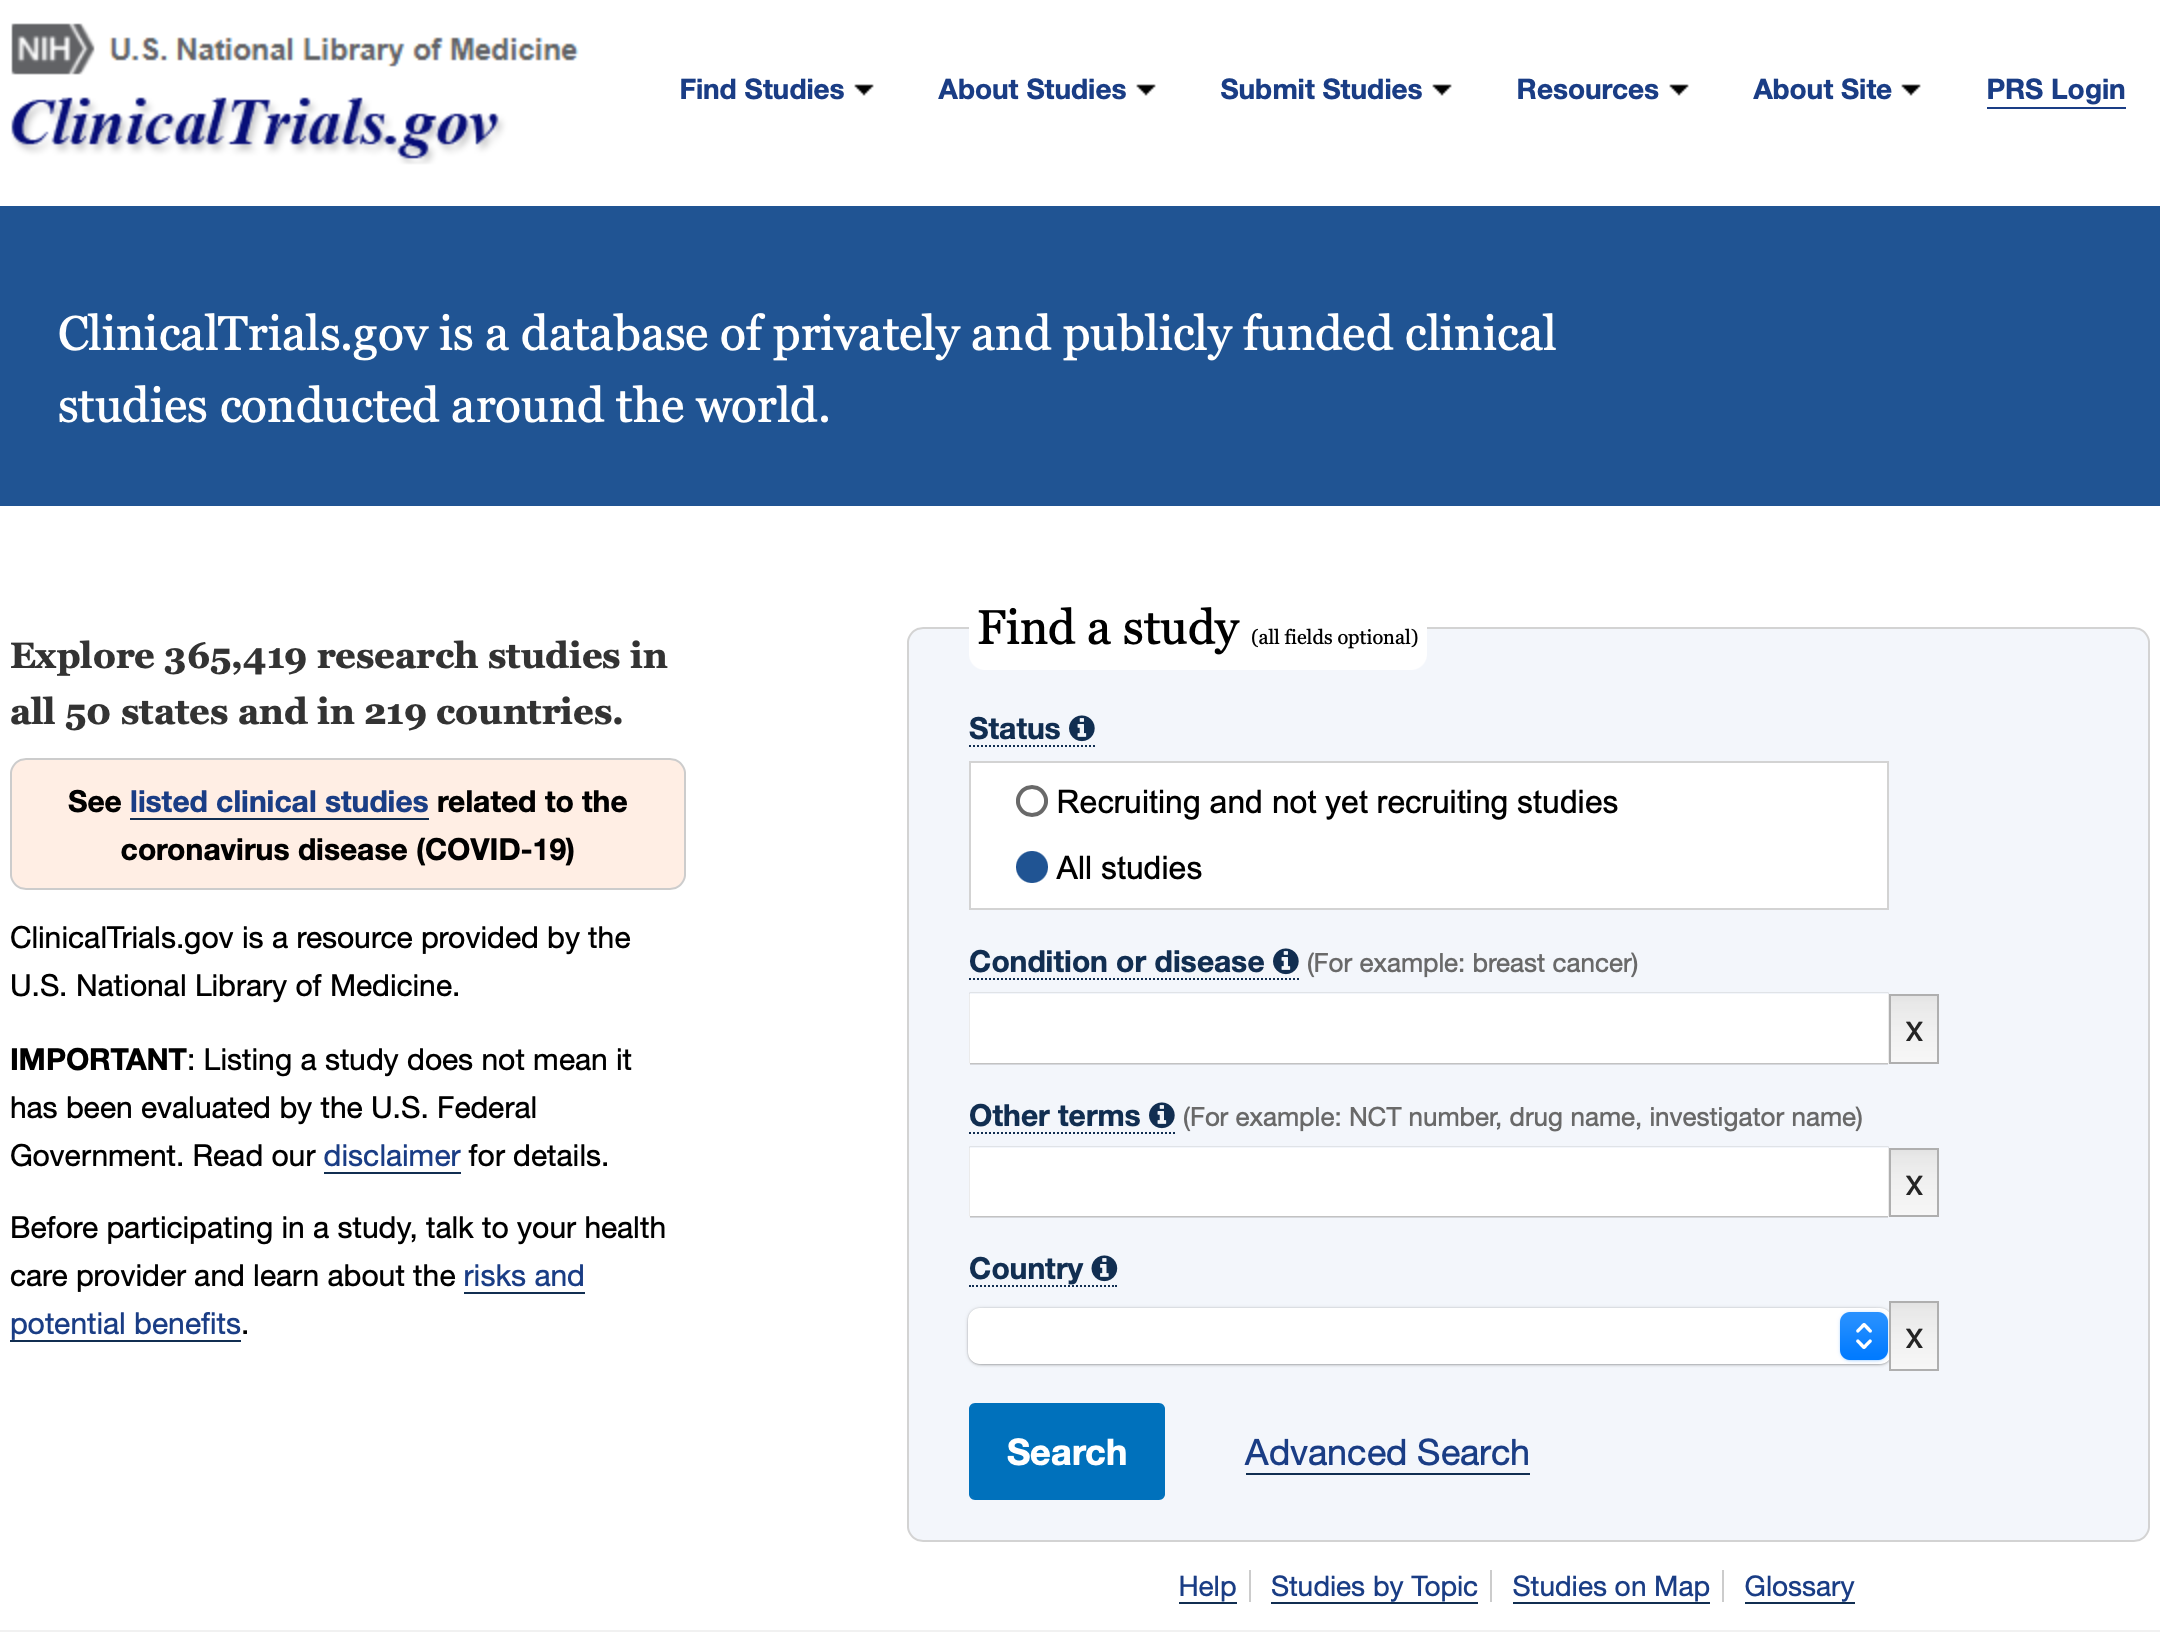 A view of the homepage of clinicaltrials.gov